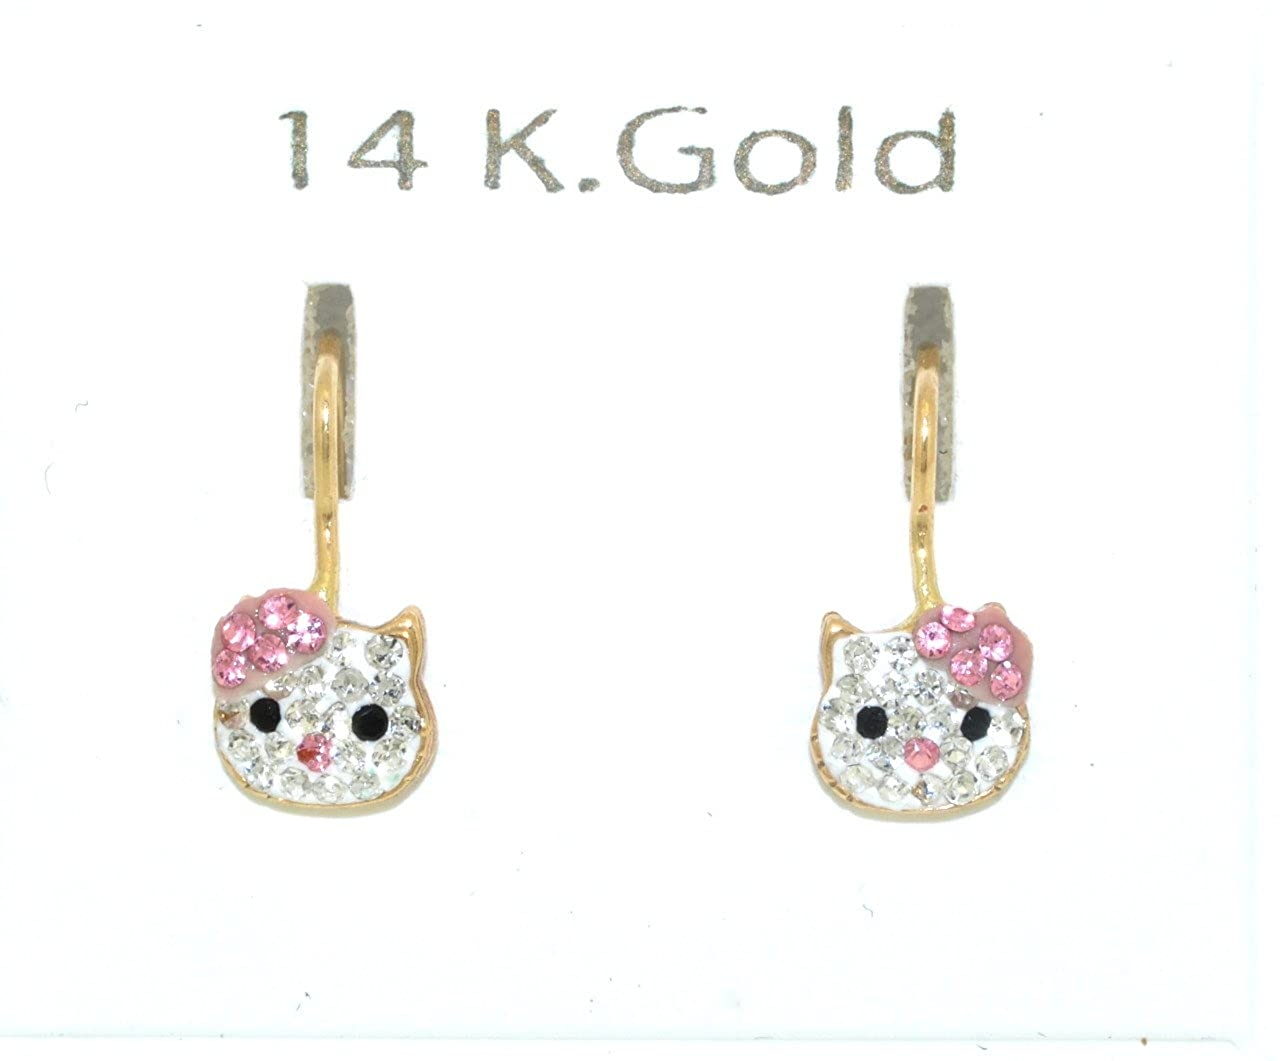 e68e1e3c2 Amazon.com: 14K Yellow Gold Pink CZ Hello Kitty Earrings: Wire Backs:  Jewelry